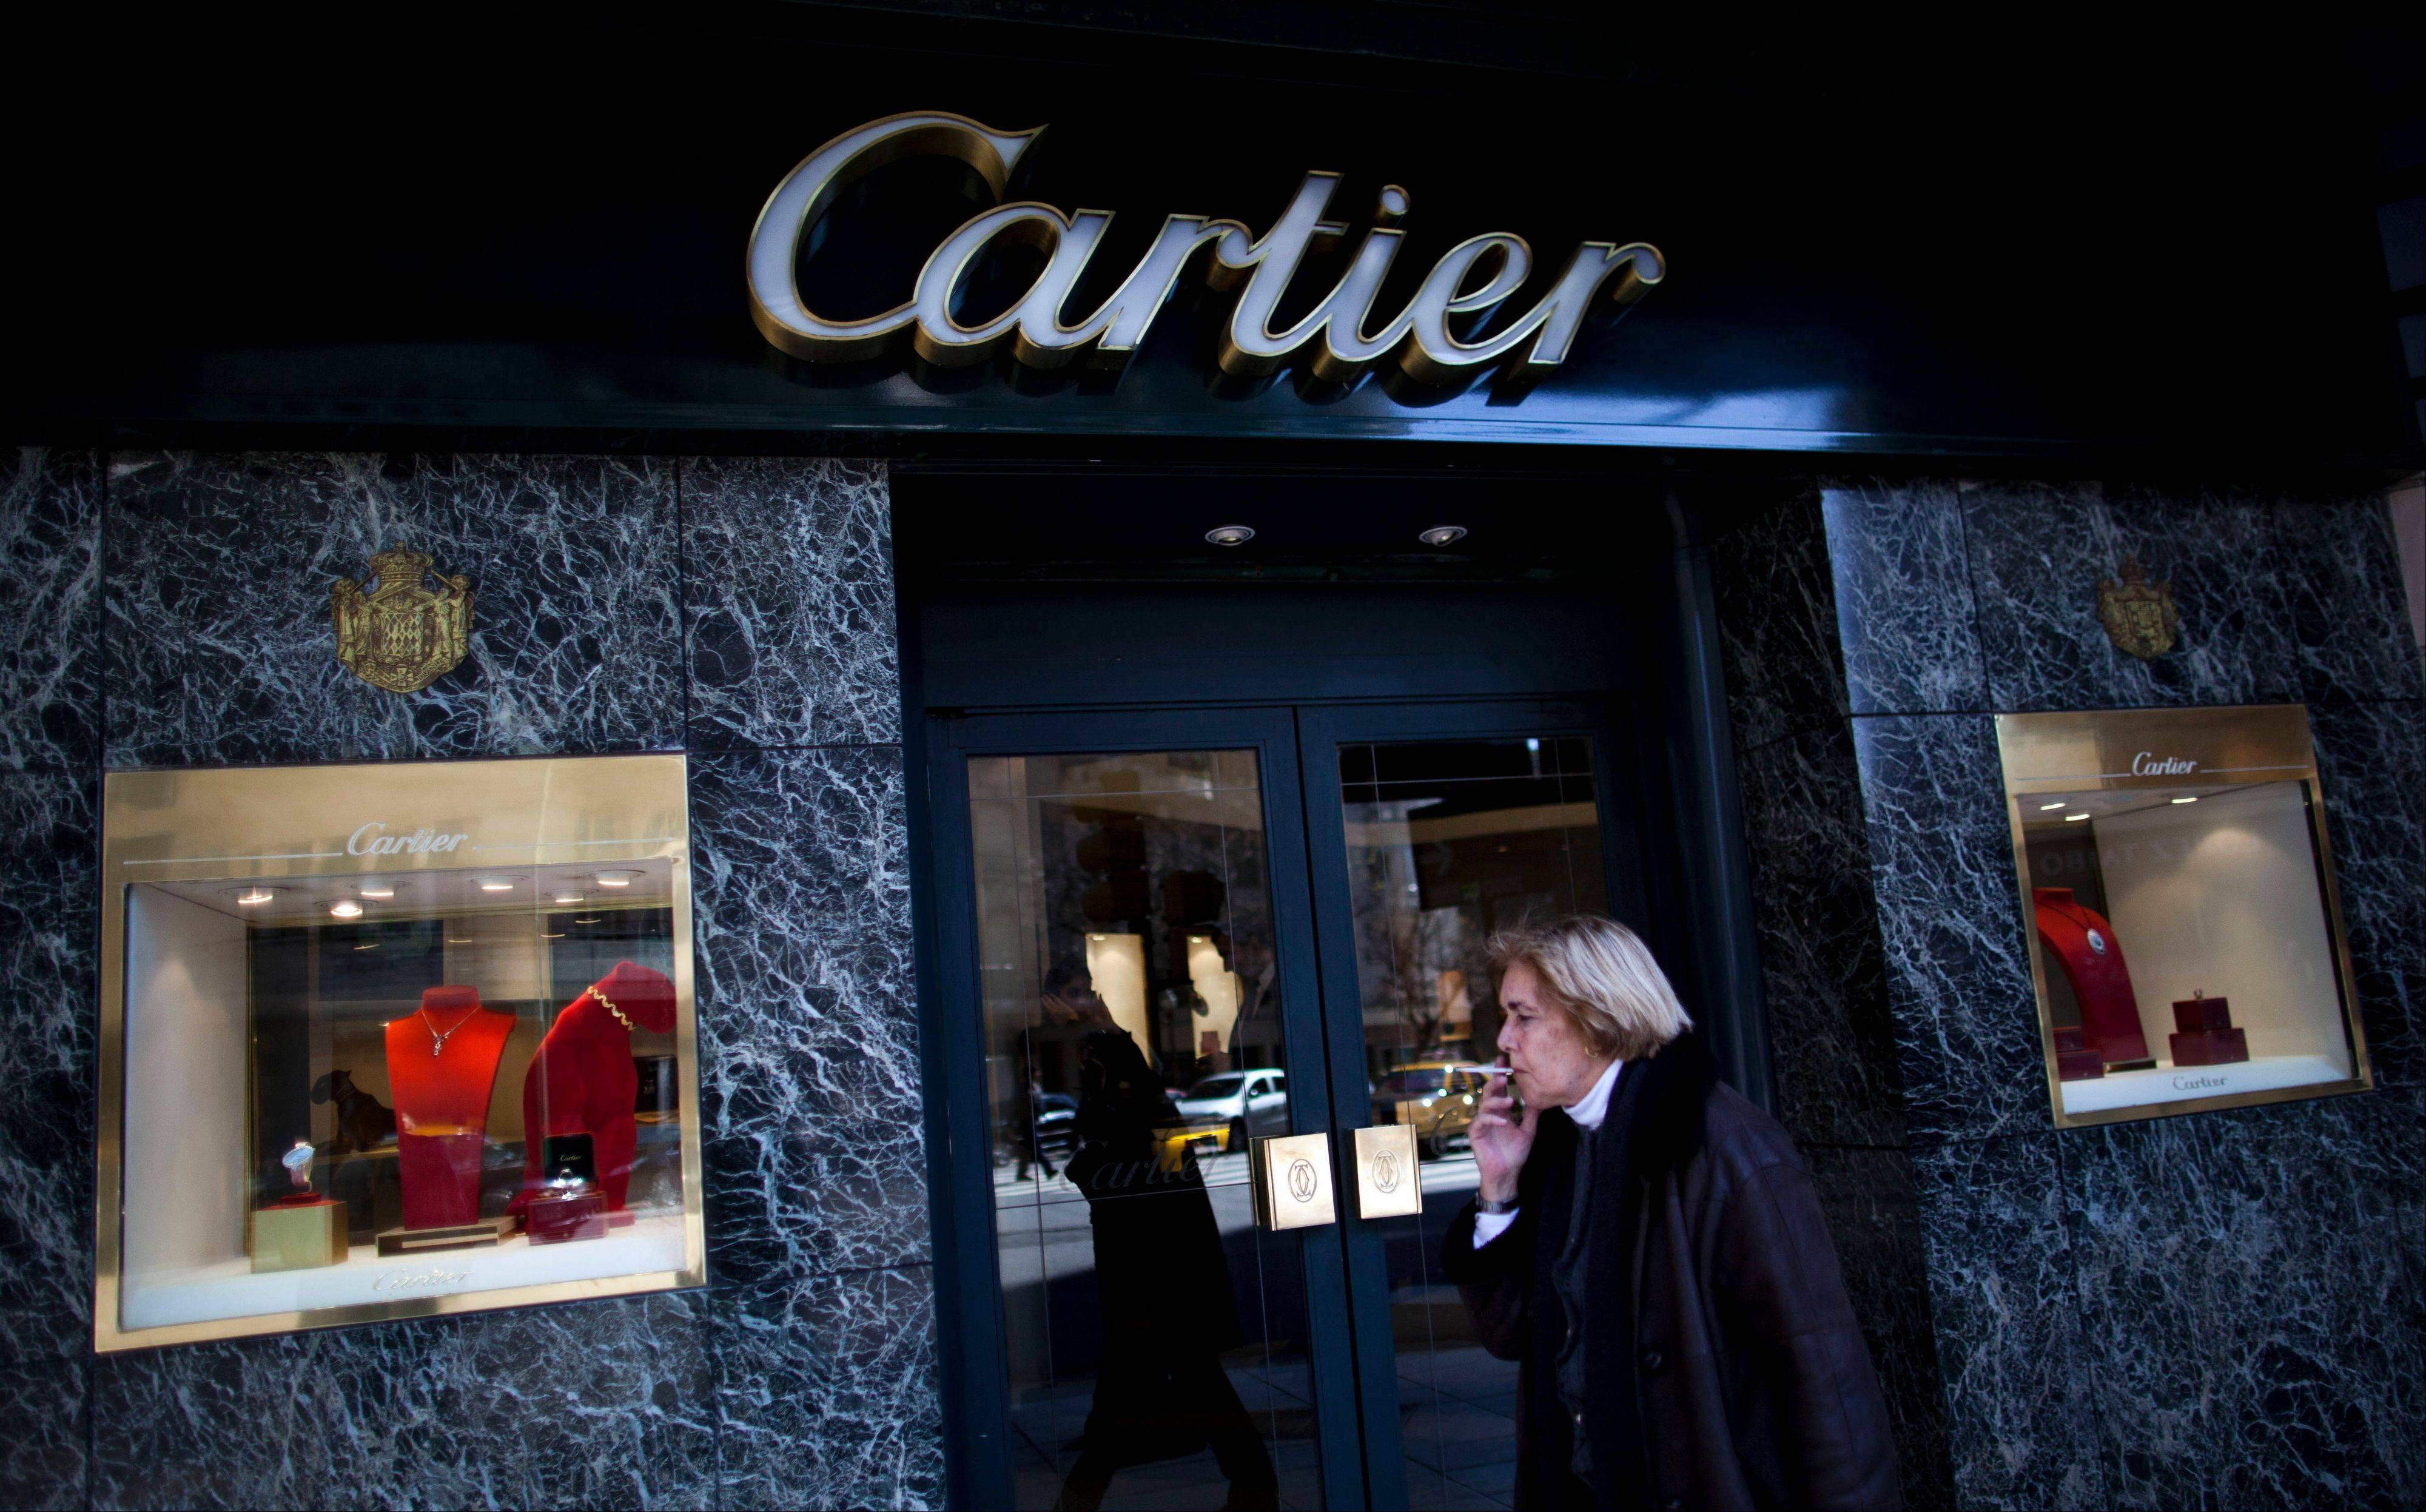 The world's most luxurious designer brands are abandoning Argentina rather than complying with tight new government economic restrictions, leaving empty shelves and storefronts along the capital's elegant Alvear Avenue, where tourists once flocked to see the latest in fashion.